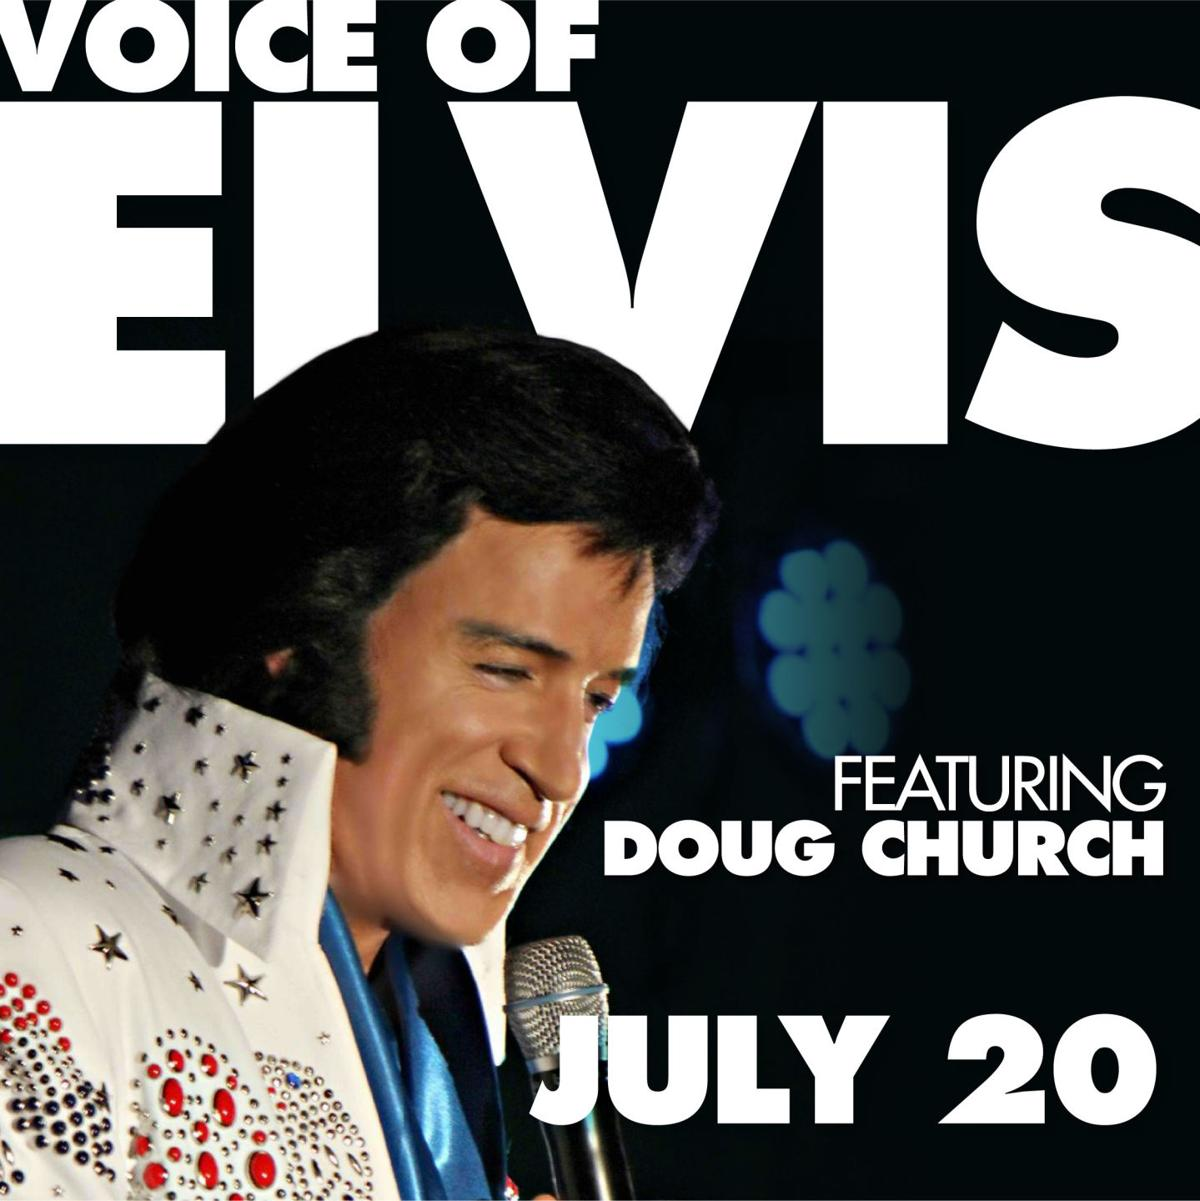 The Voice of Elvis